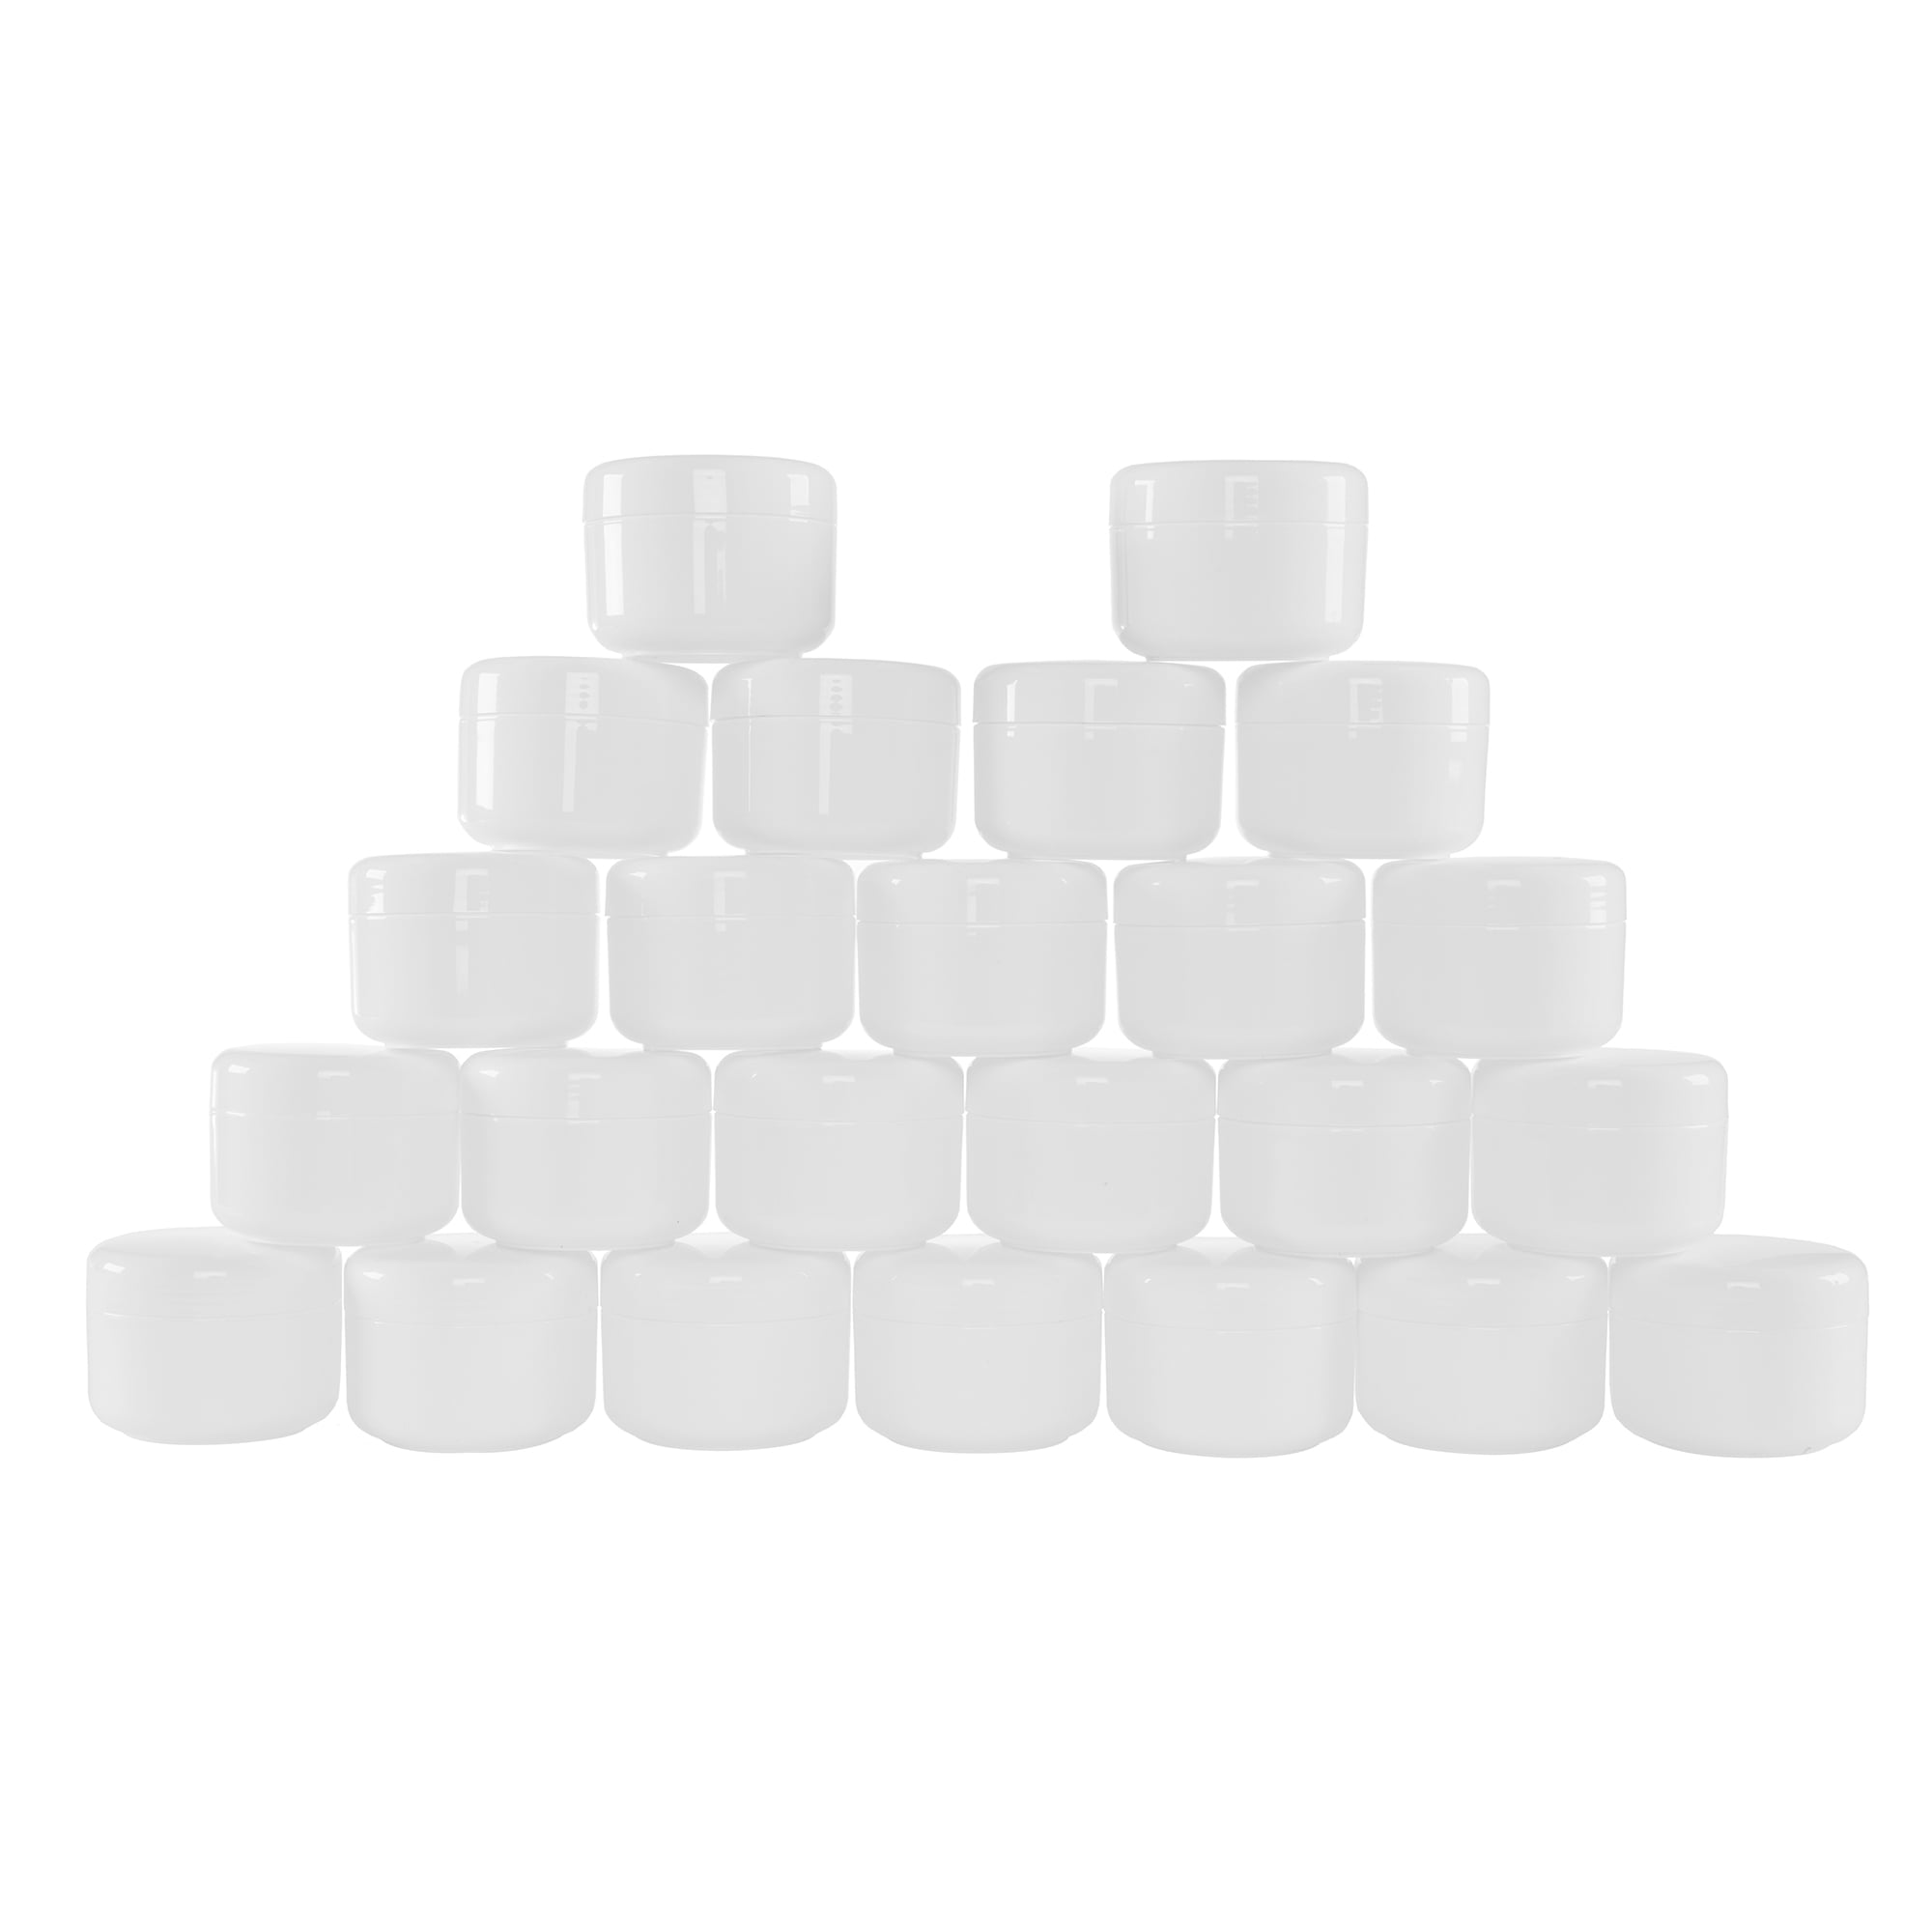 White 2 Ounce Plastic Jar Containers, 24 Pack of Storage Jars with Inner and Outer Lid By Stalwart Travel,... by Trademark Global LLC